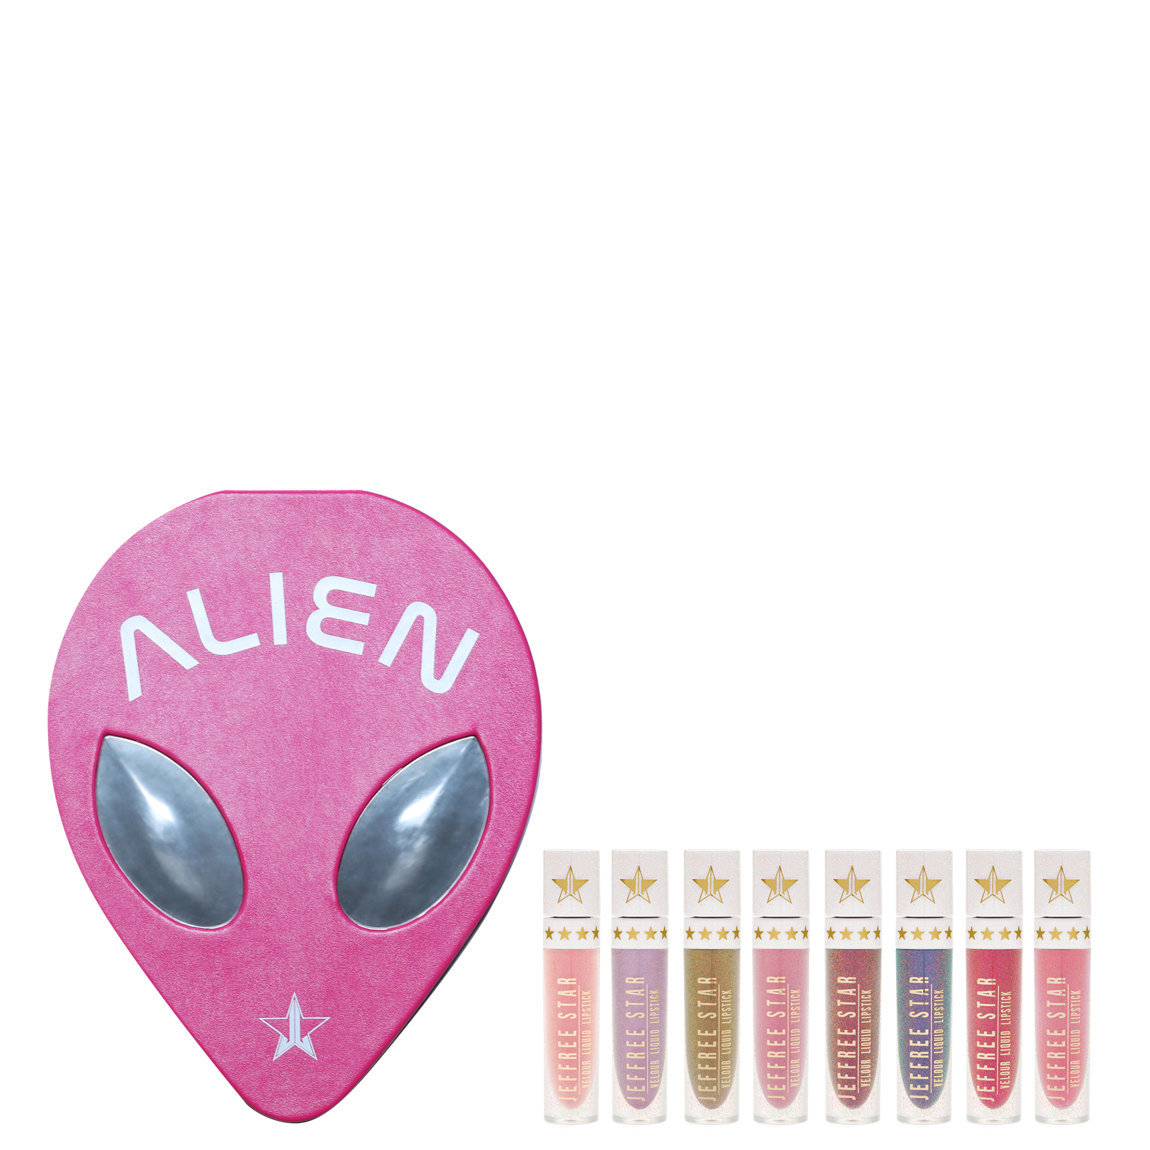 Jeffree Star Cosmetics Alien Palette & Velour Liquid Lipstick Holiday Bundle 2018 product smear.